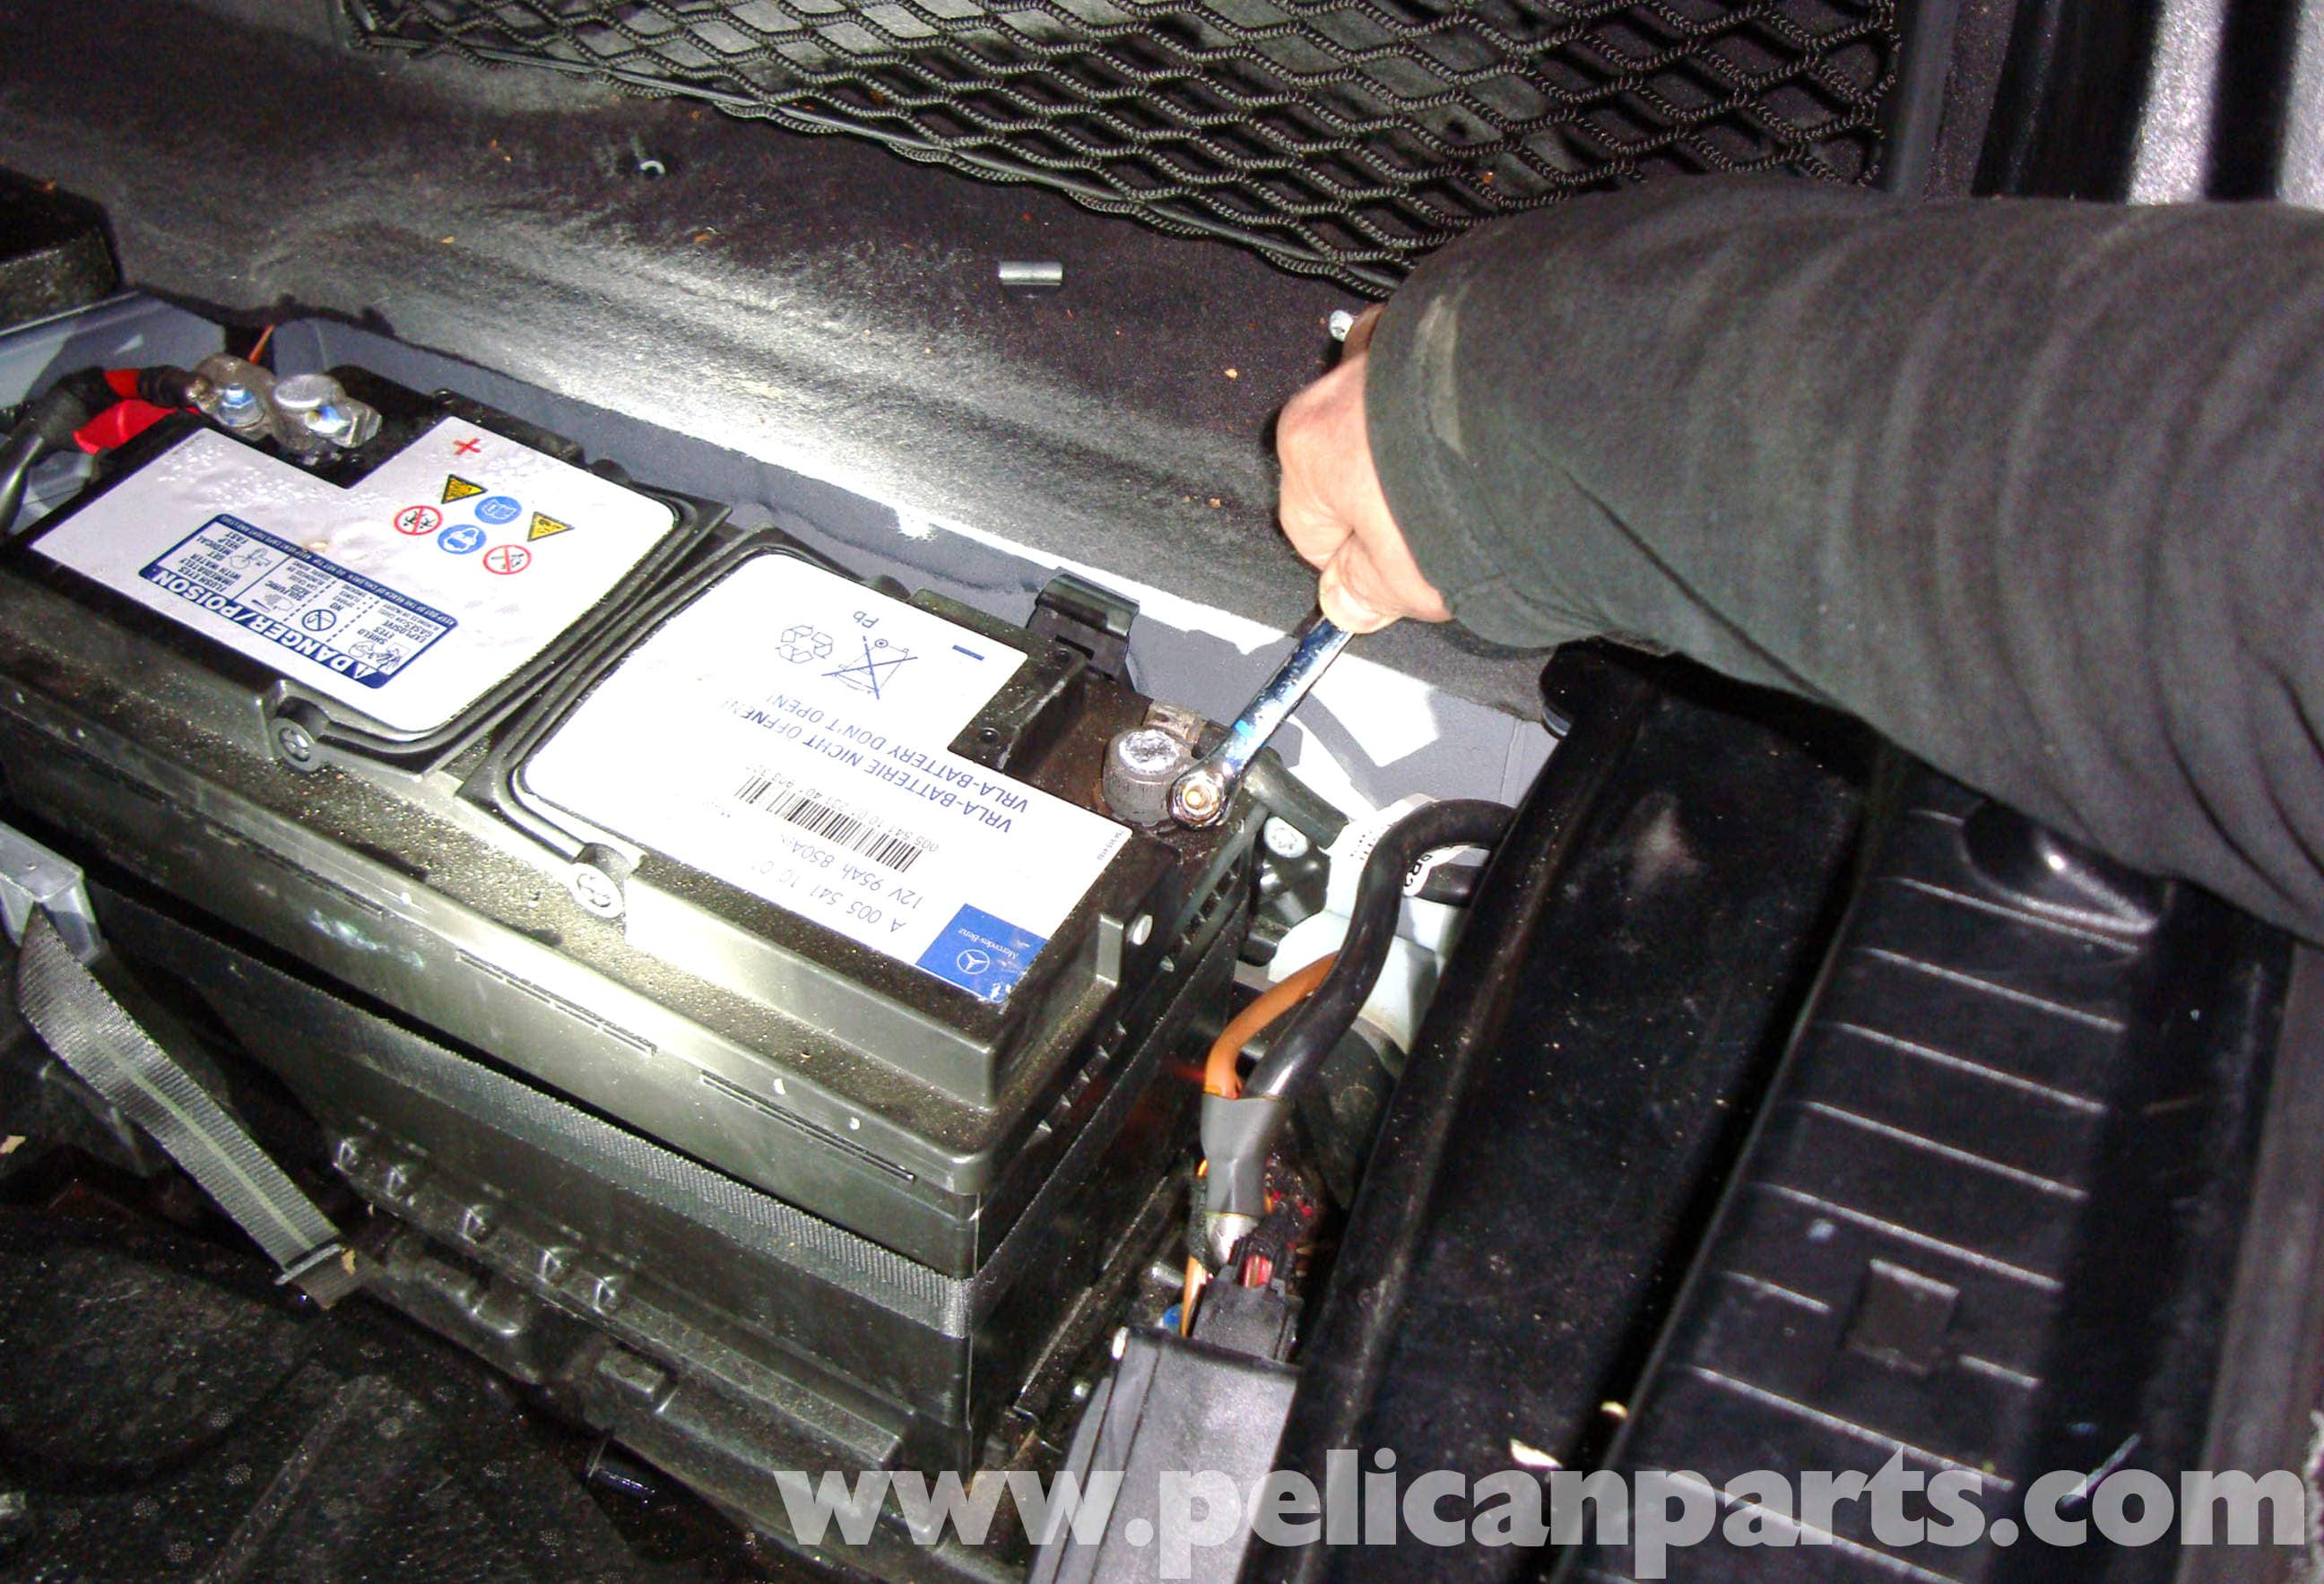 Mercedes-Benz E-Class: Changing the battery